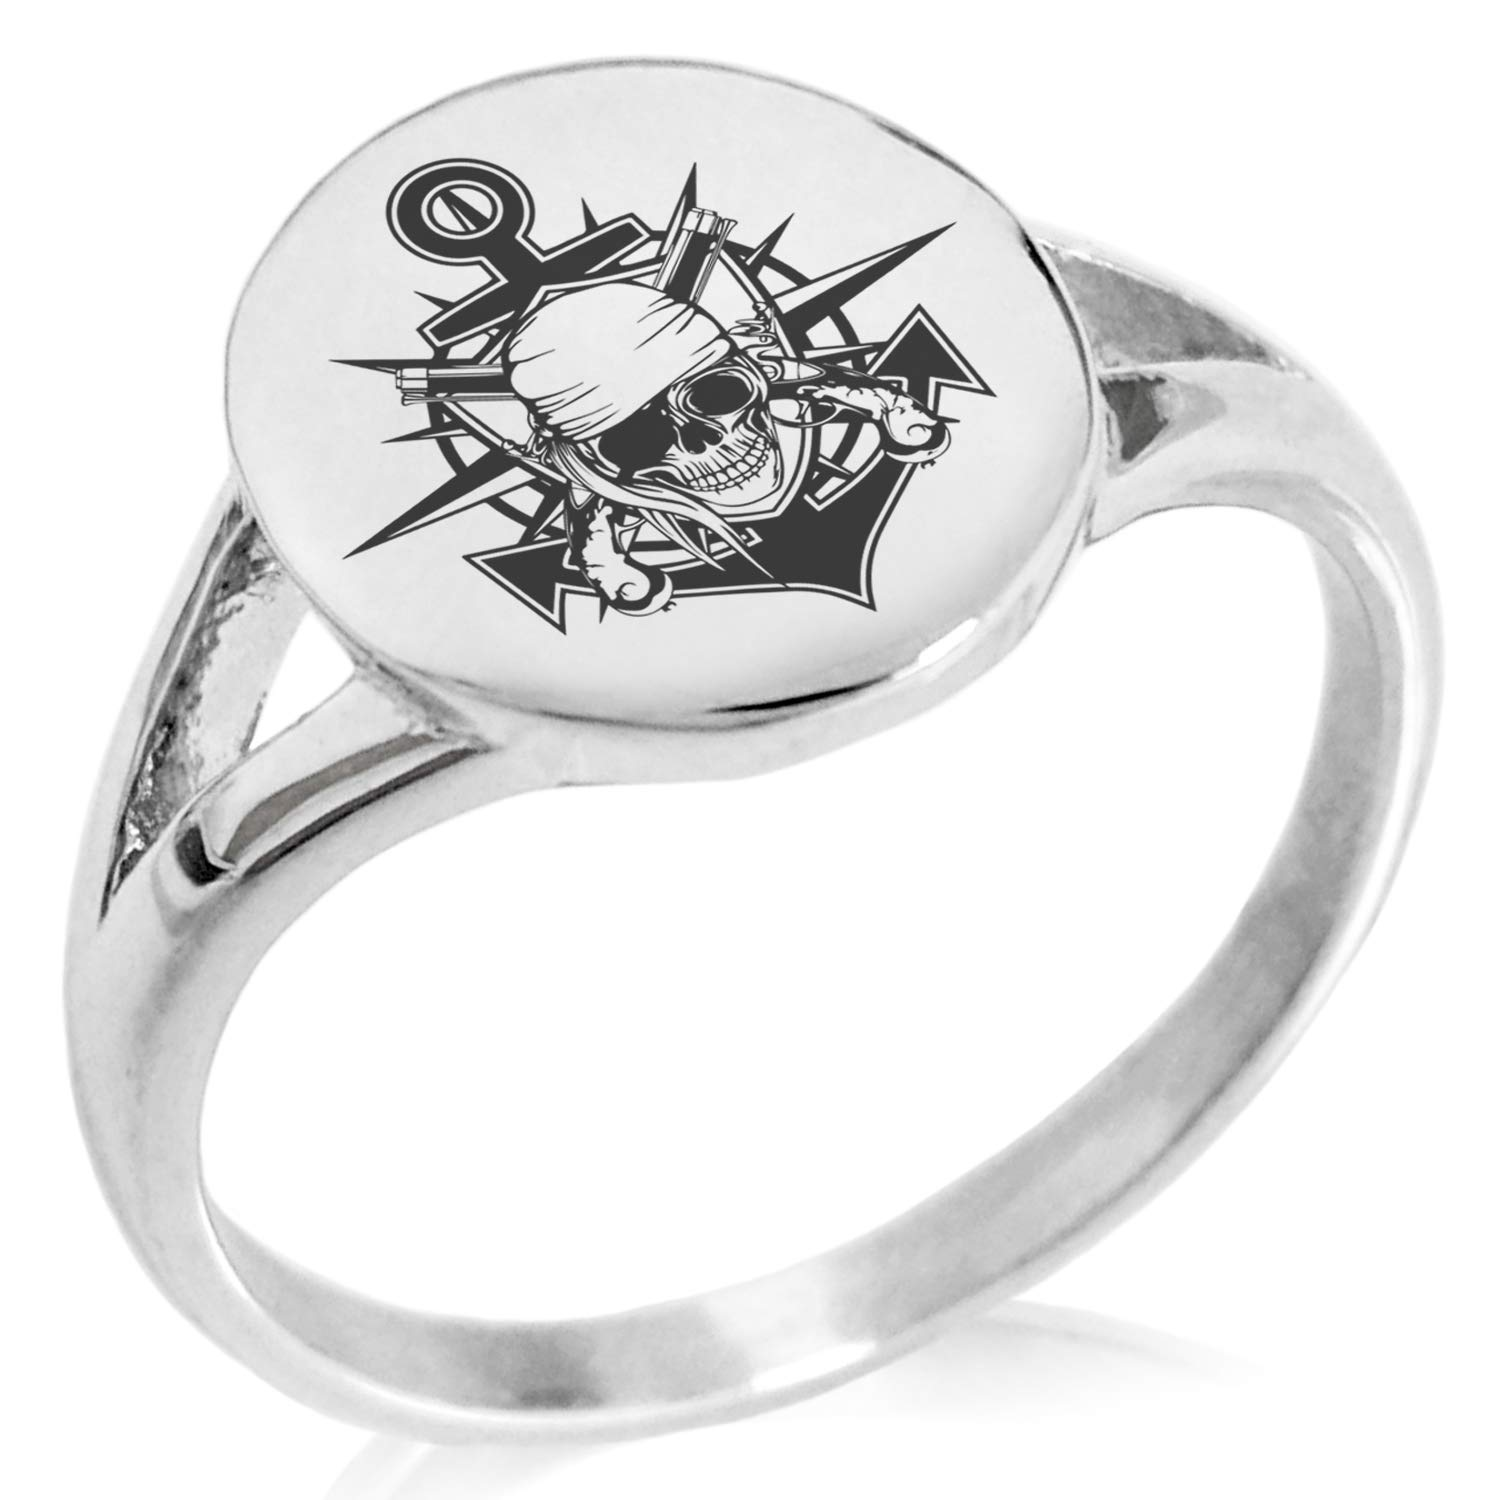 Tioneer Stainless Steel Pirate Bandit Skull Anchor Minimalist Oval Top Polished Statement Ring